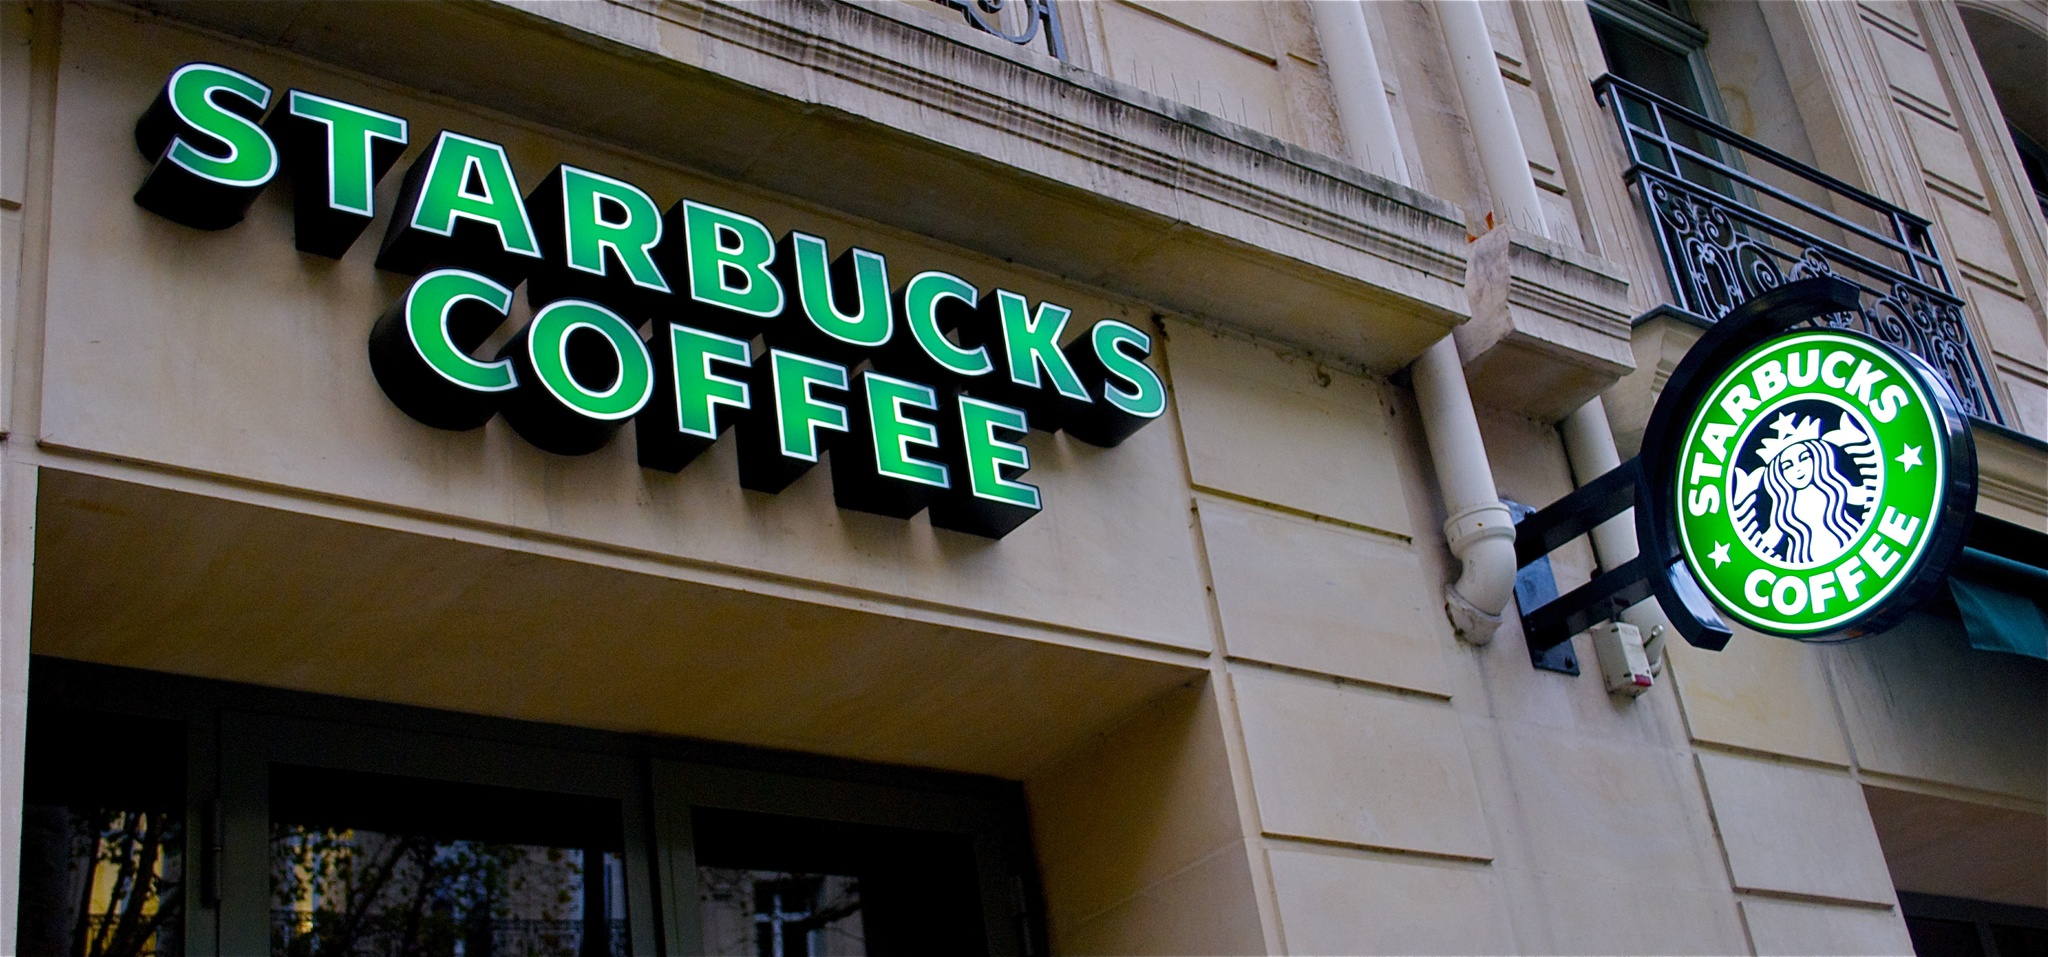 QR code test drives 27% of in-store Starbucks customers to trial app